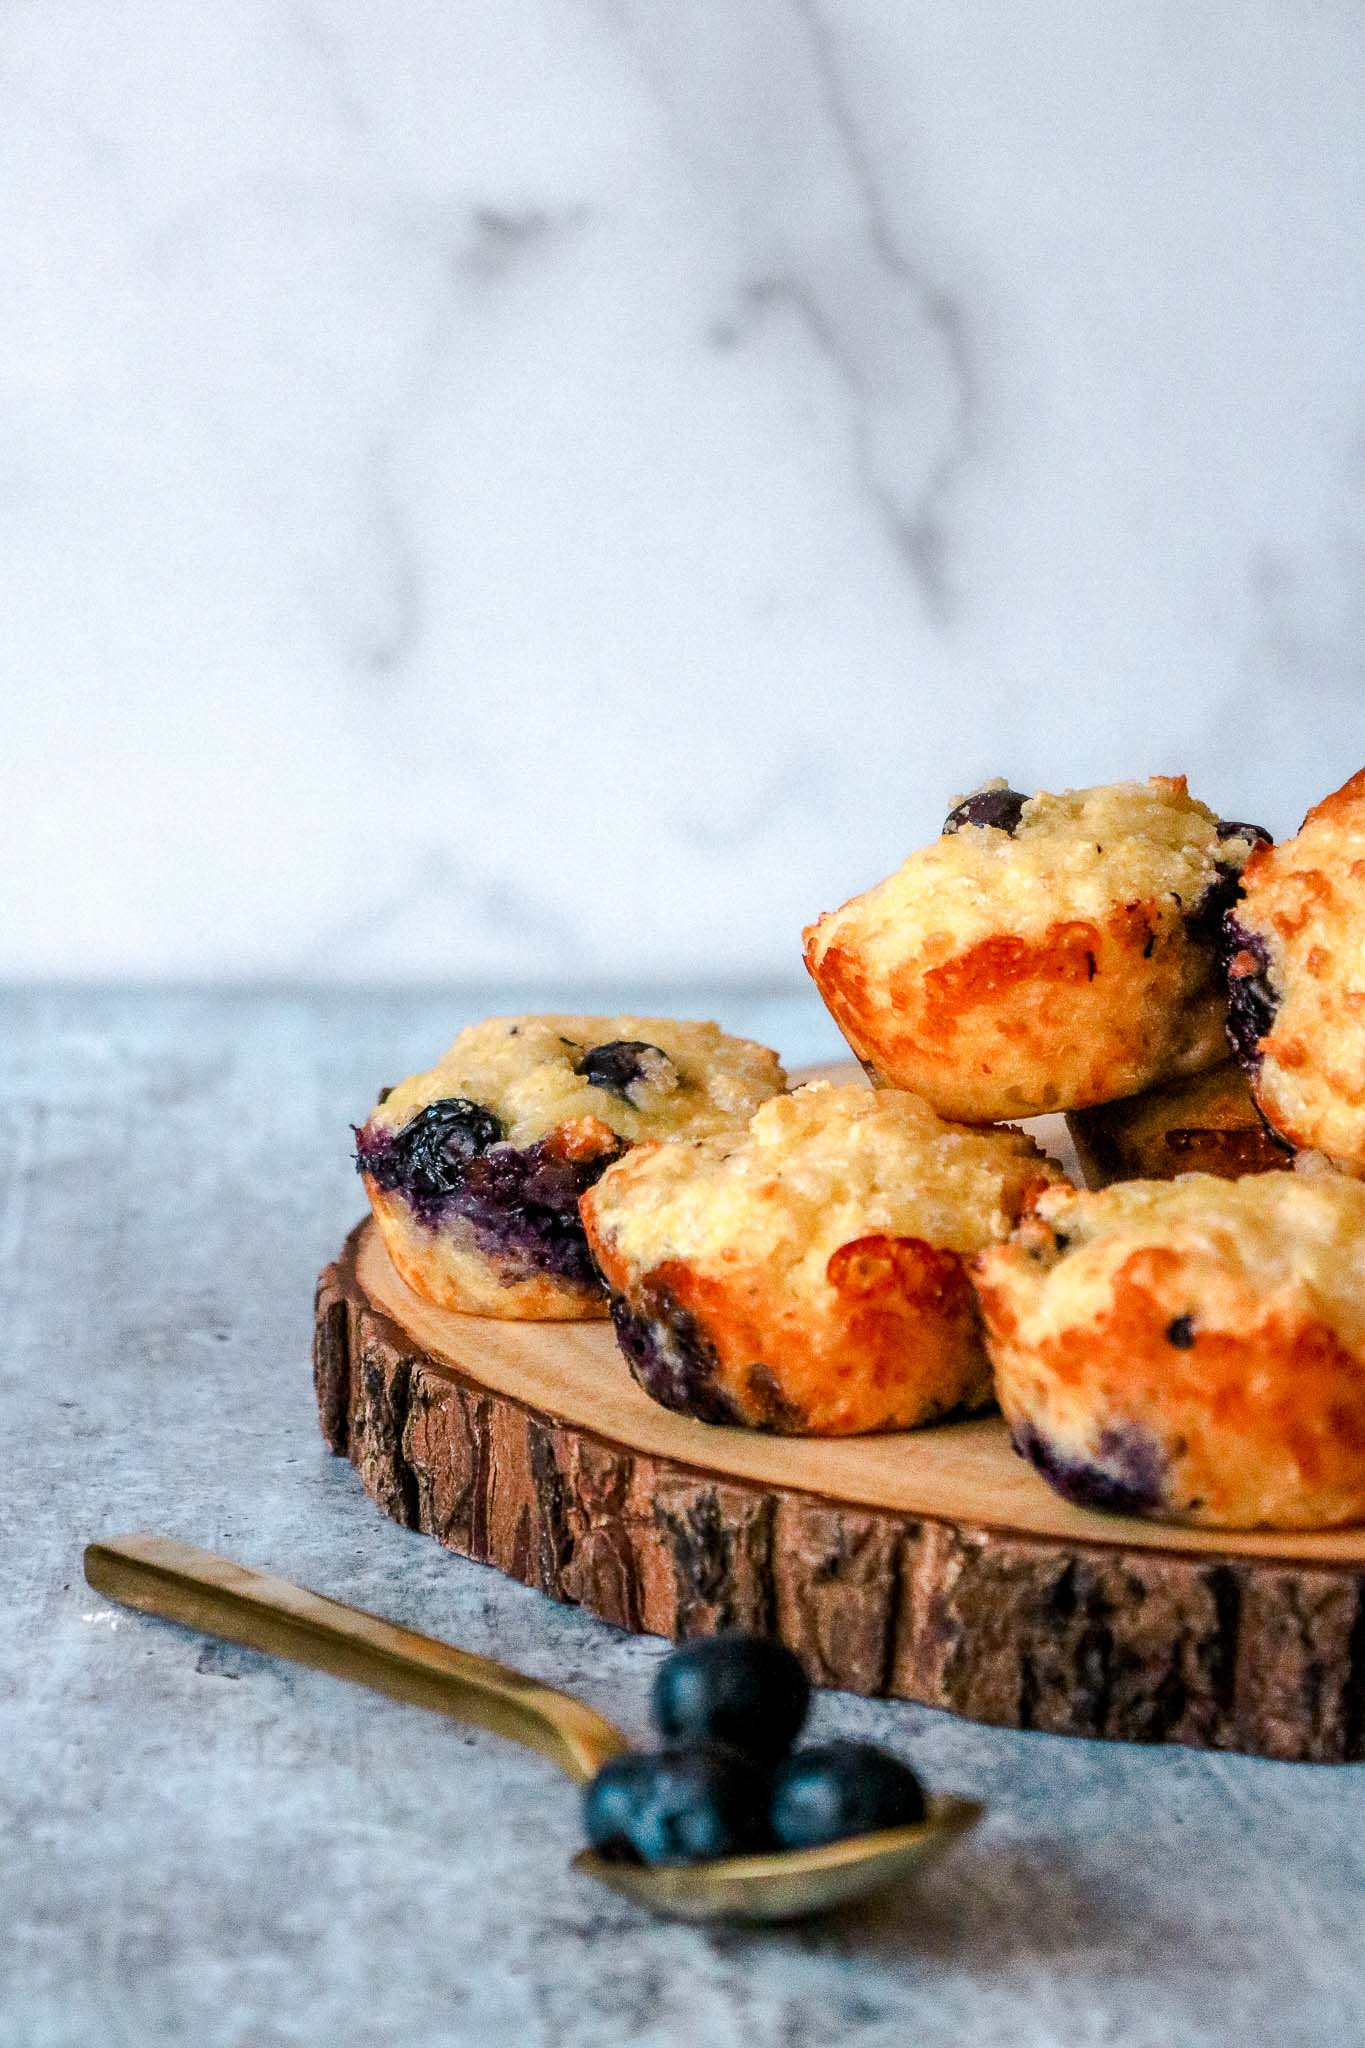 A wooden pedestal with muffins stacked on it with a gold spoon and blueberries on it in front.